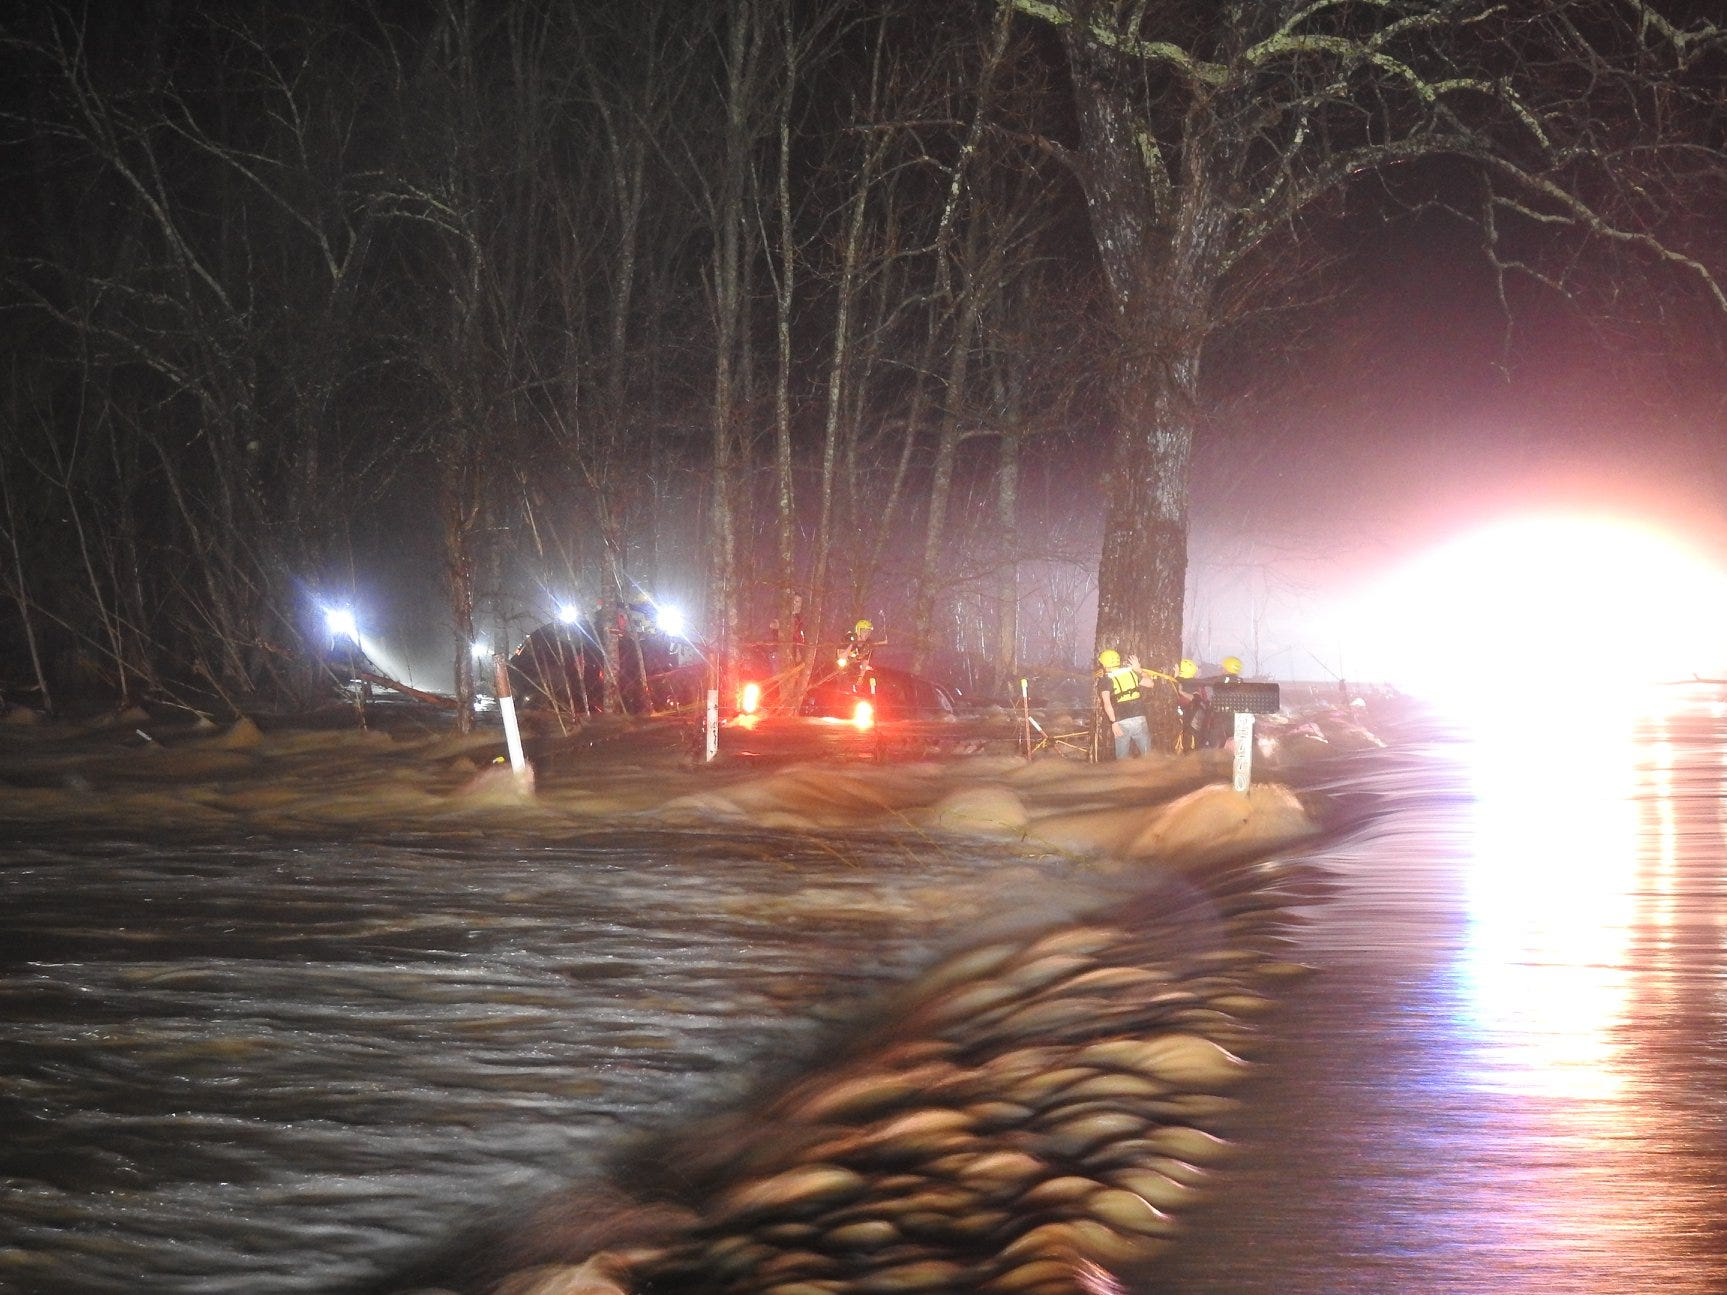 A Wednesday night storm in Dickson County caused widespread flooding, which led to water rescues and wrecks.